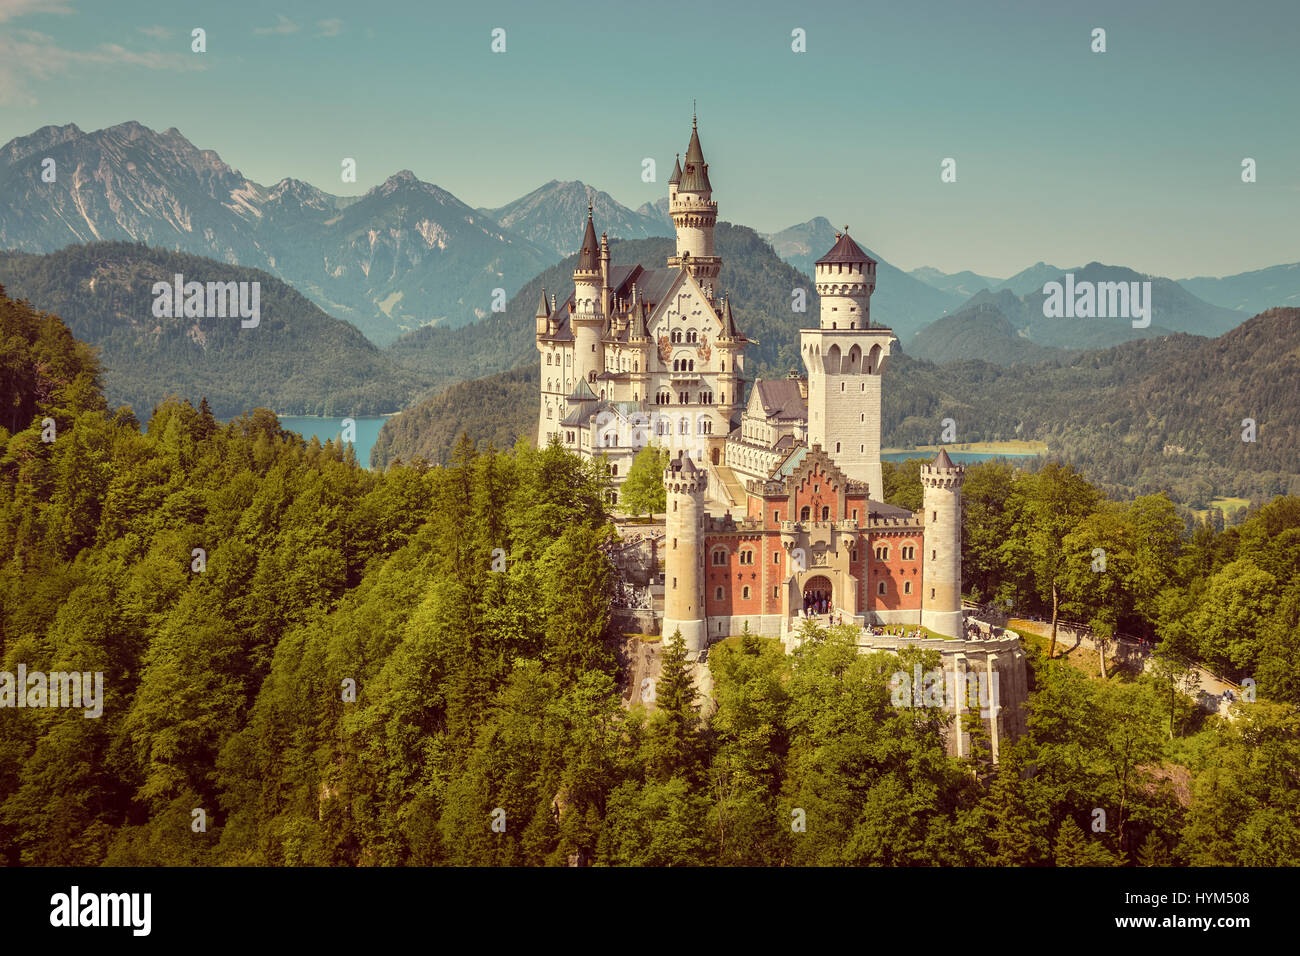 Beautiful view of famous Neuschwanstein Castle, the 19th century Romanesque Revival palace built for King Ludwig - Stock Image